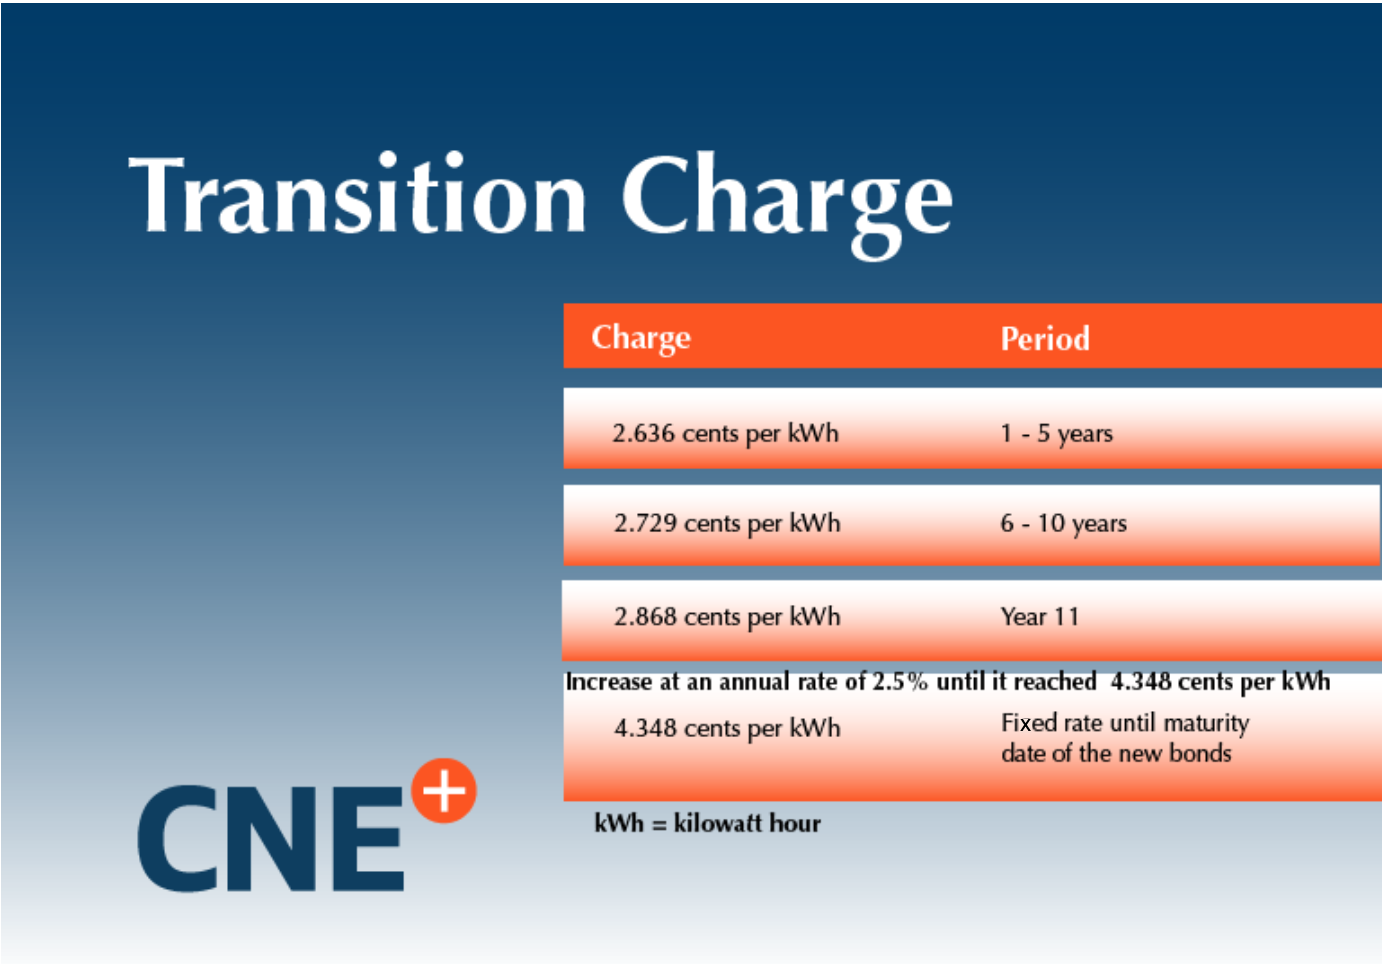 Transition charge